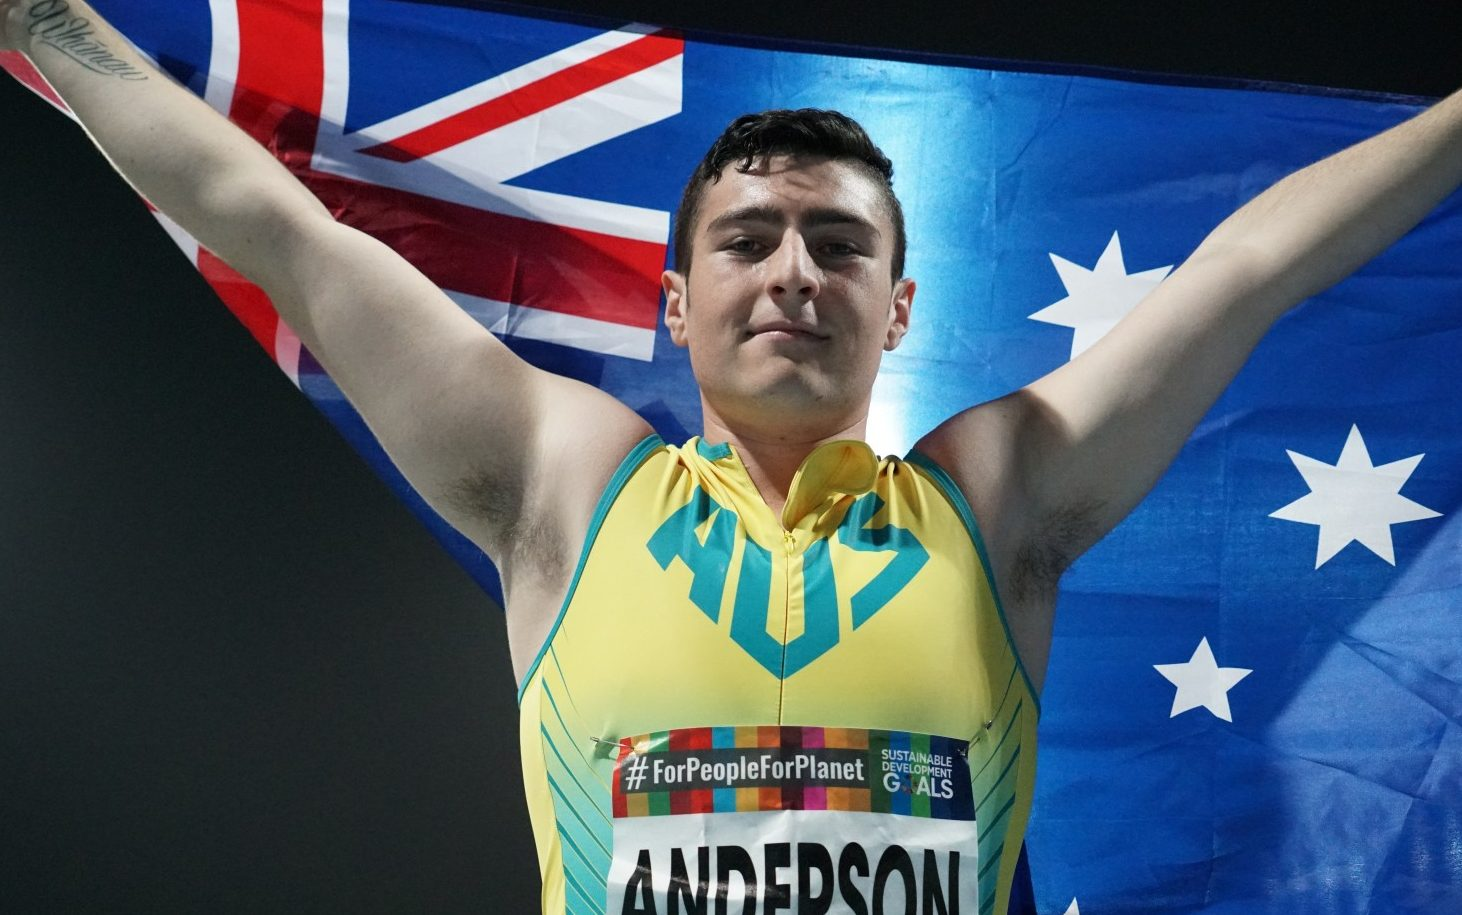 Anderson crowned world champion with record-breaking throw